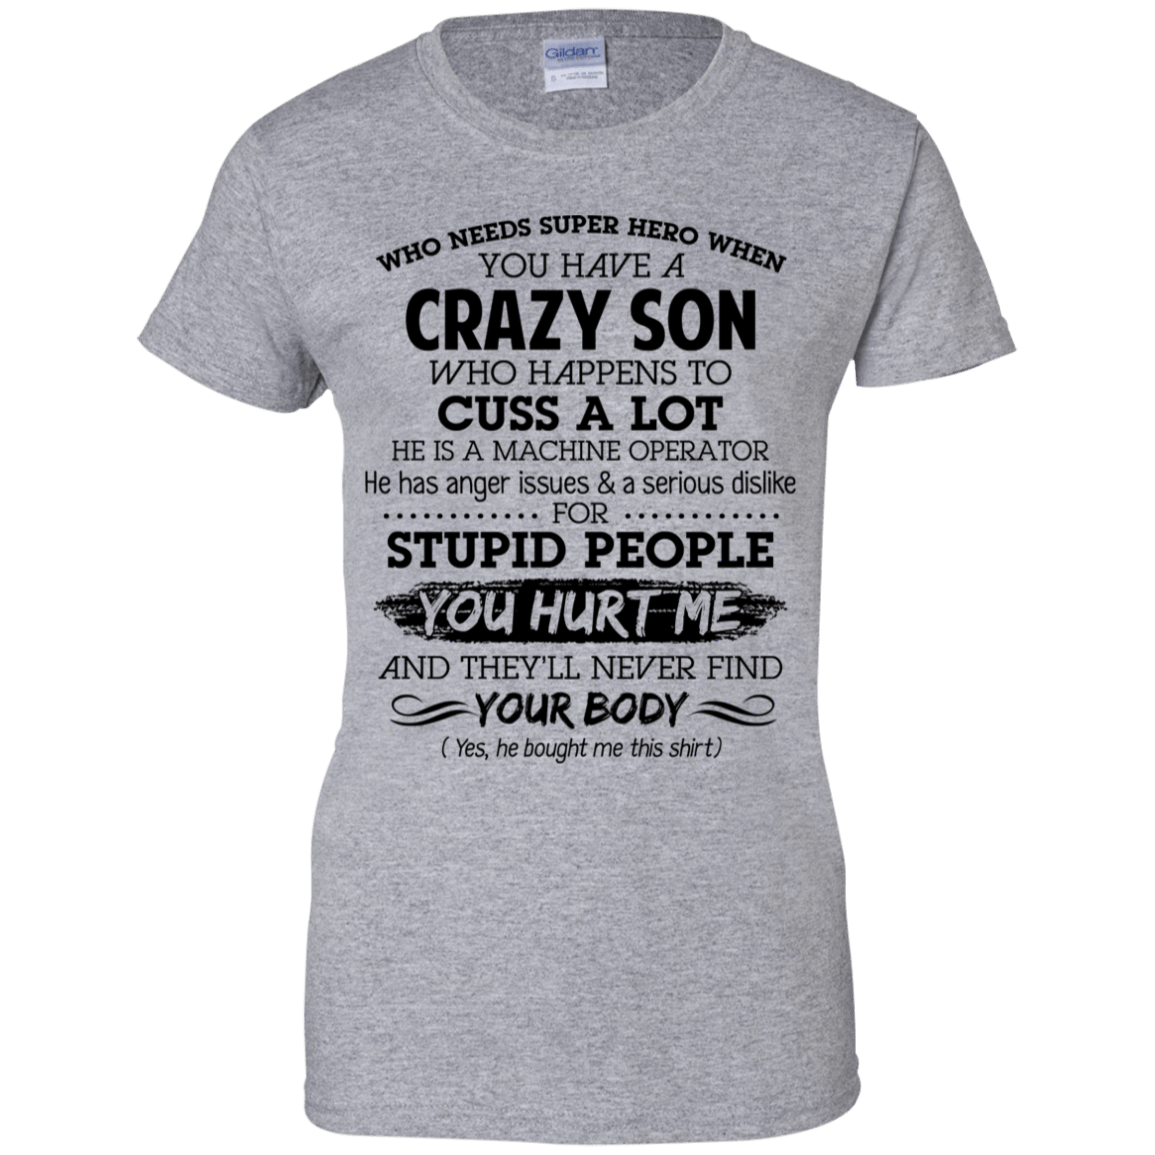 Have Crazy Son He Is A Machine Operator Mother's Day Gift 939-9265-73619439-44821 - Tee Ript